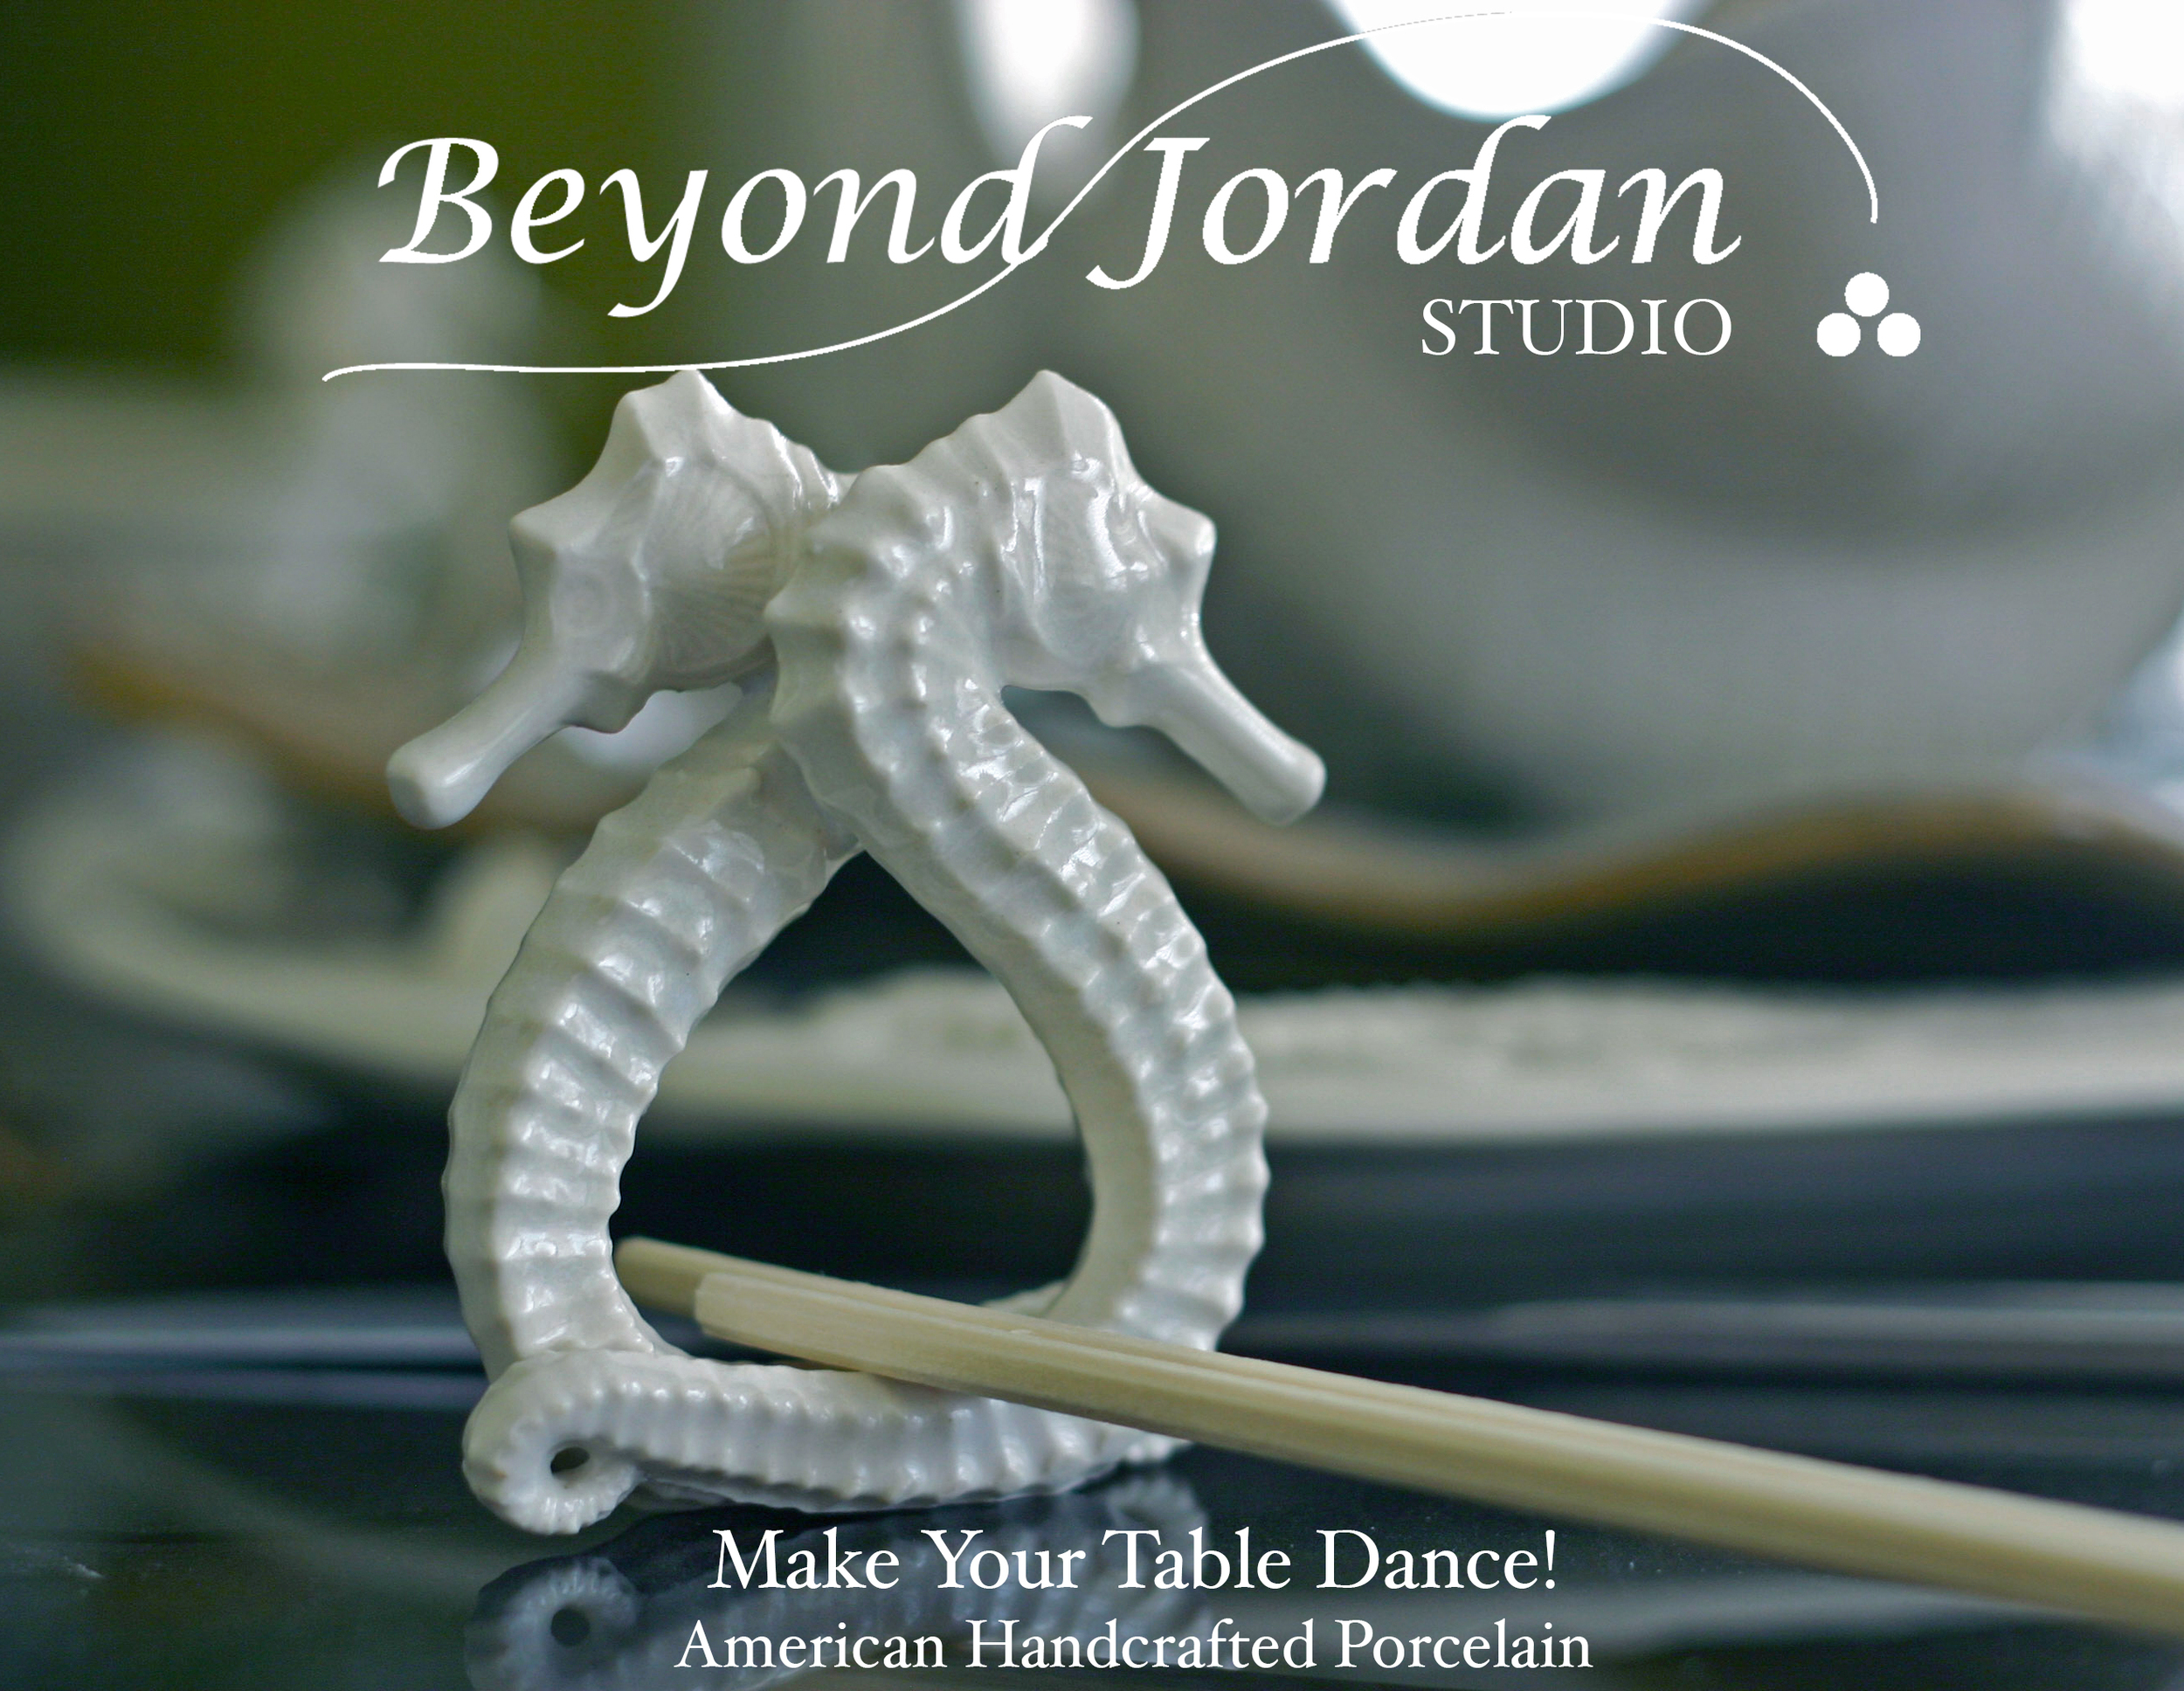 Handcrafted American Porcelain  Seahorse Chopsticks Rest .   (  50mm ISO 200 f2.8 1/50 Natural light 0930)